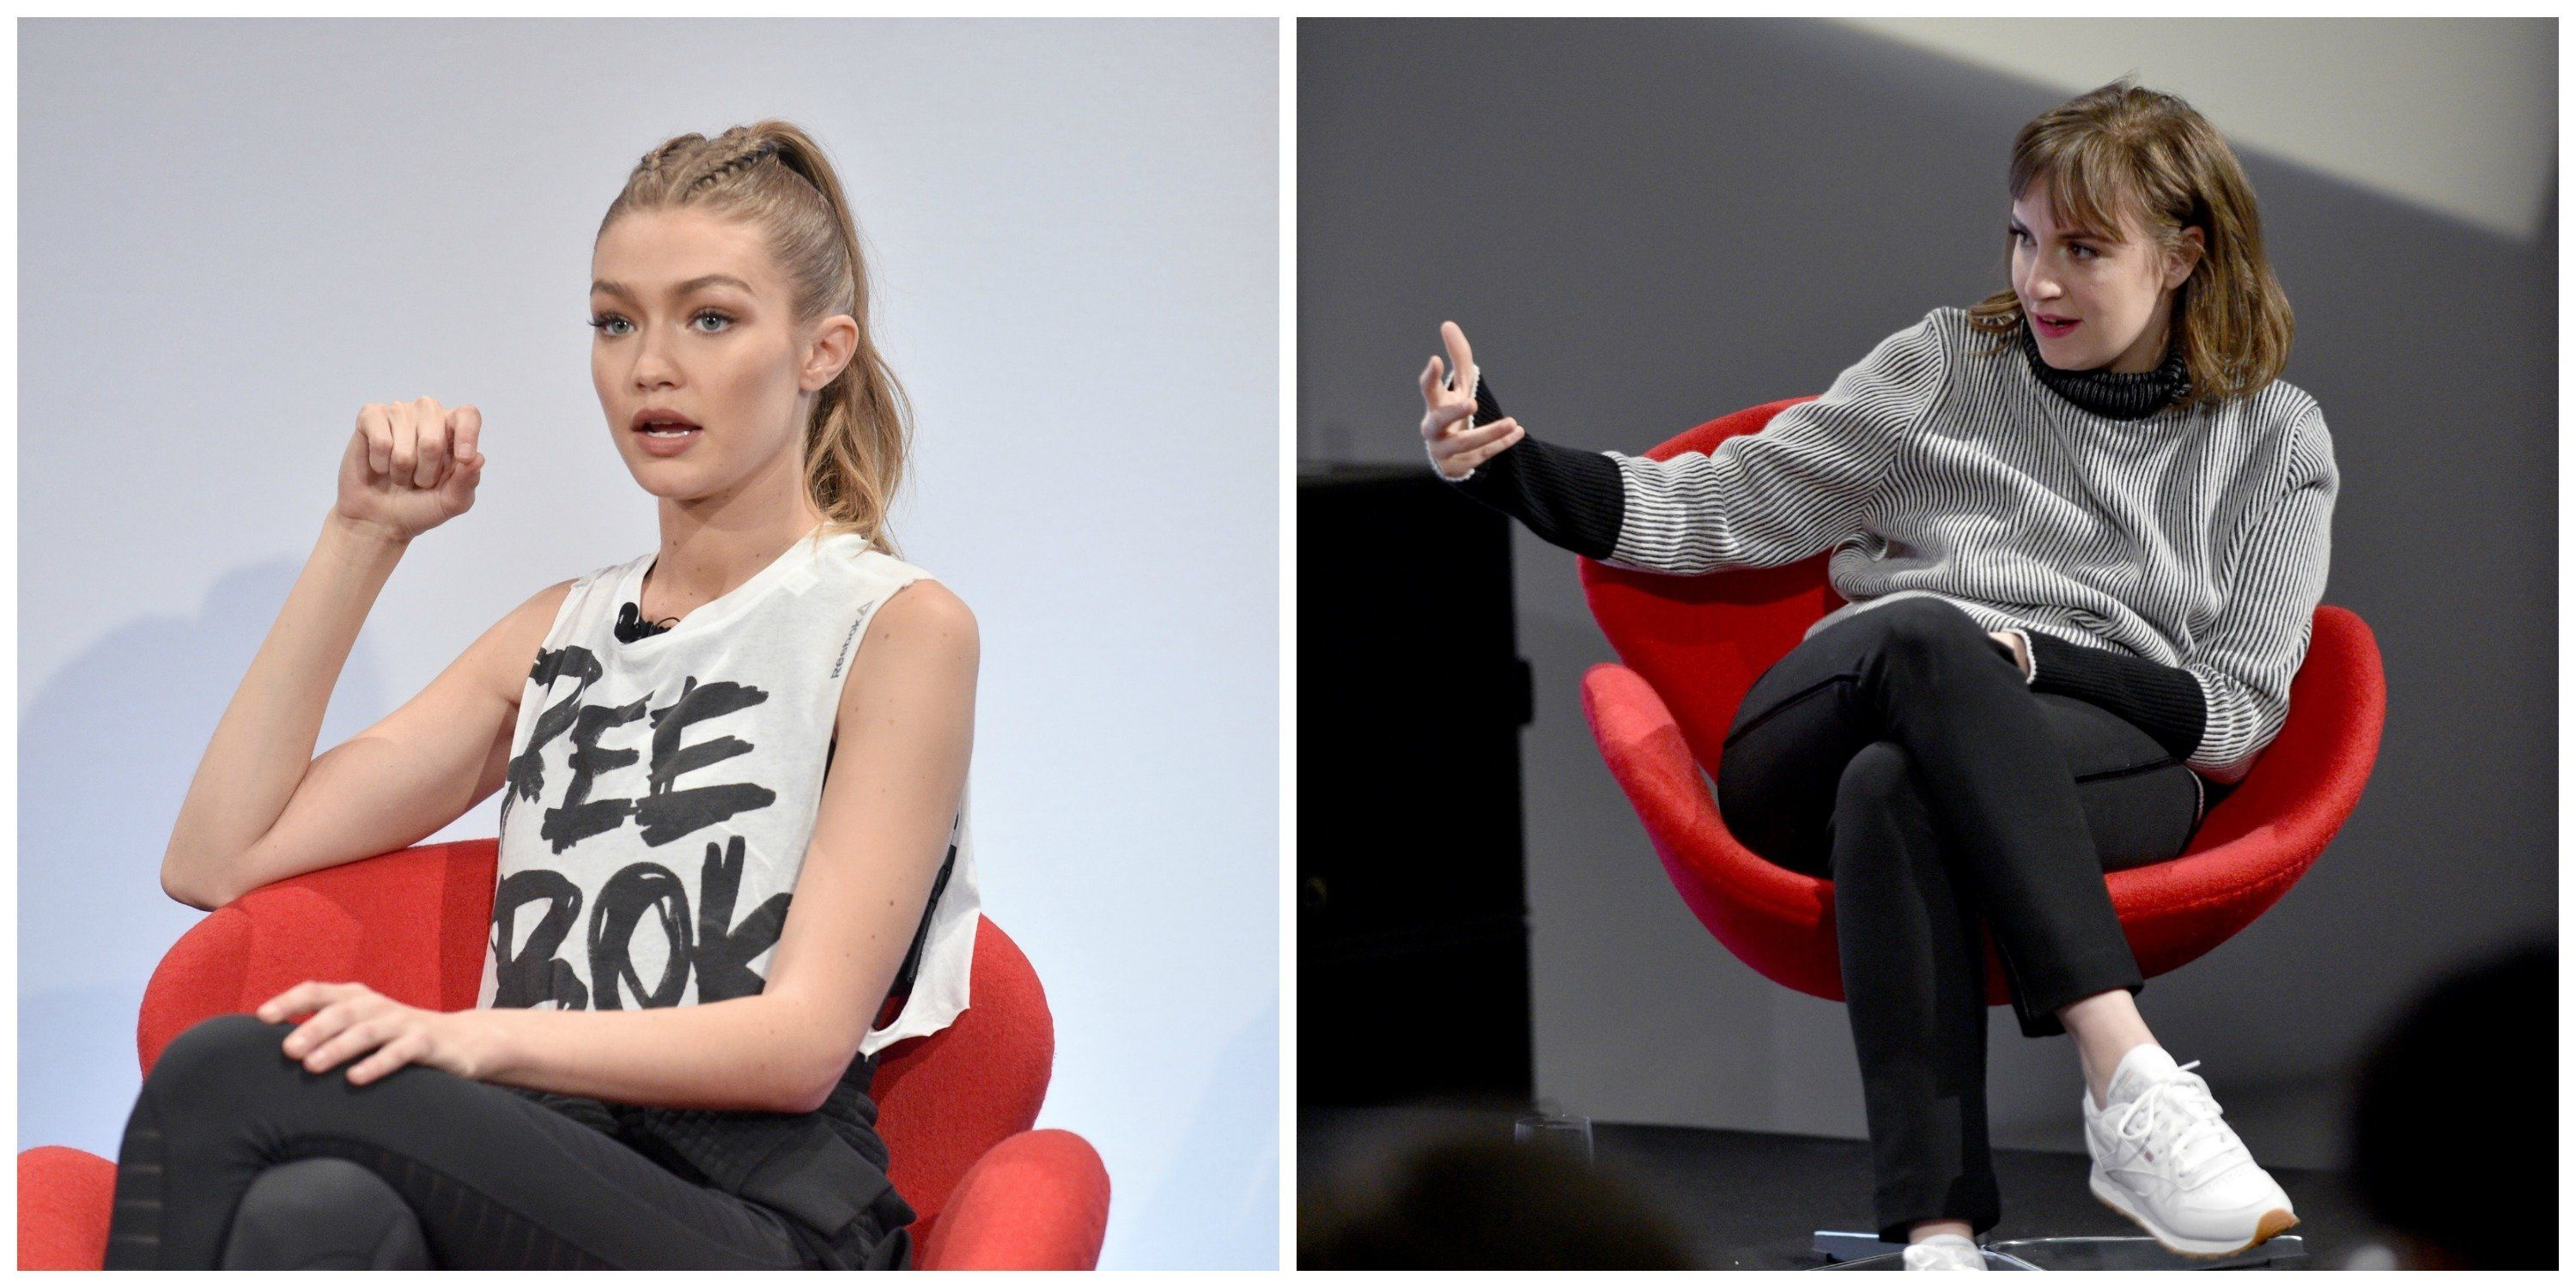 Allow Gigi Hadid and Lena Dunham offer some real talk on mental